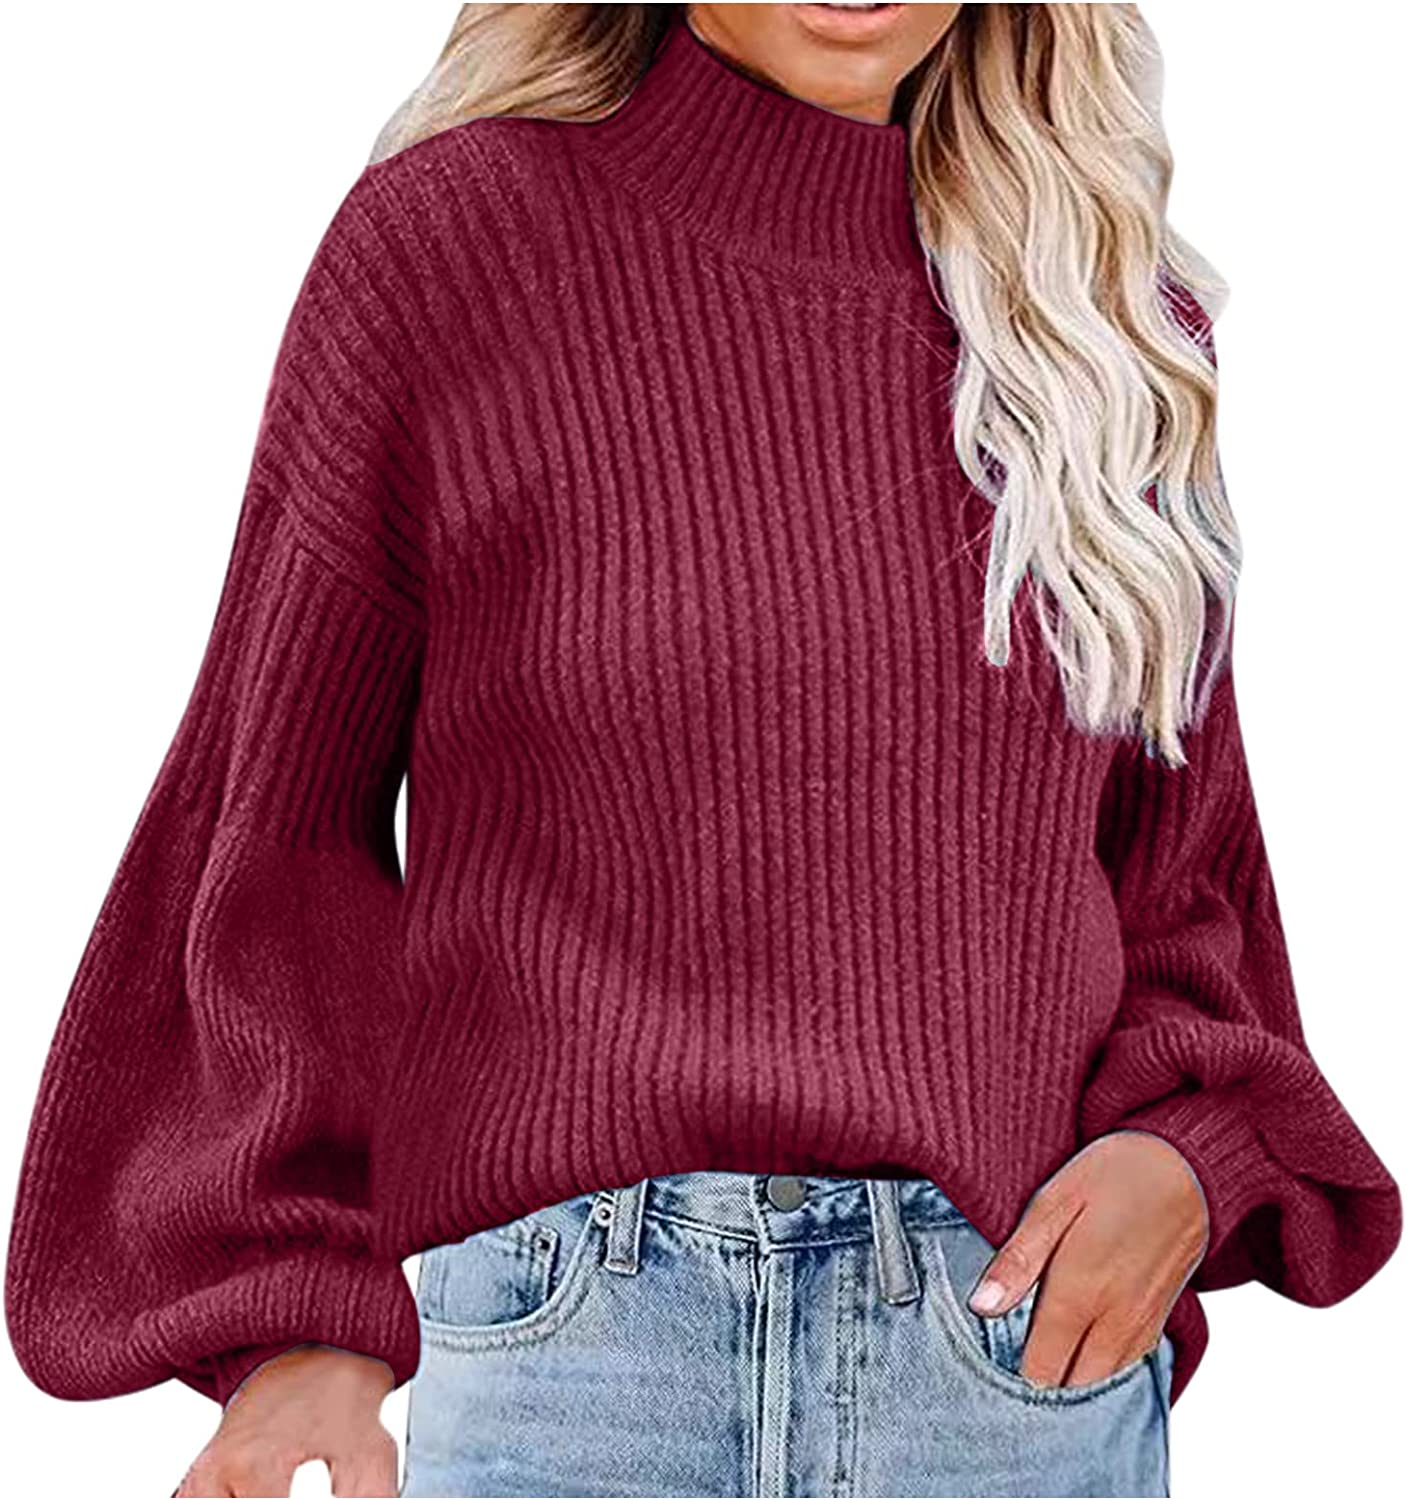 Women's Sweaters Waffle Solid Color High Neck Jumper Top Long Sleeve Pullover Knit Sweater for Women by Pocciol